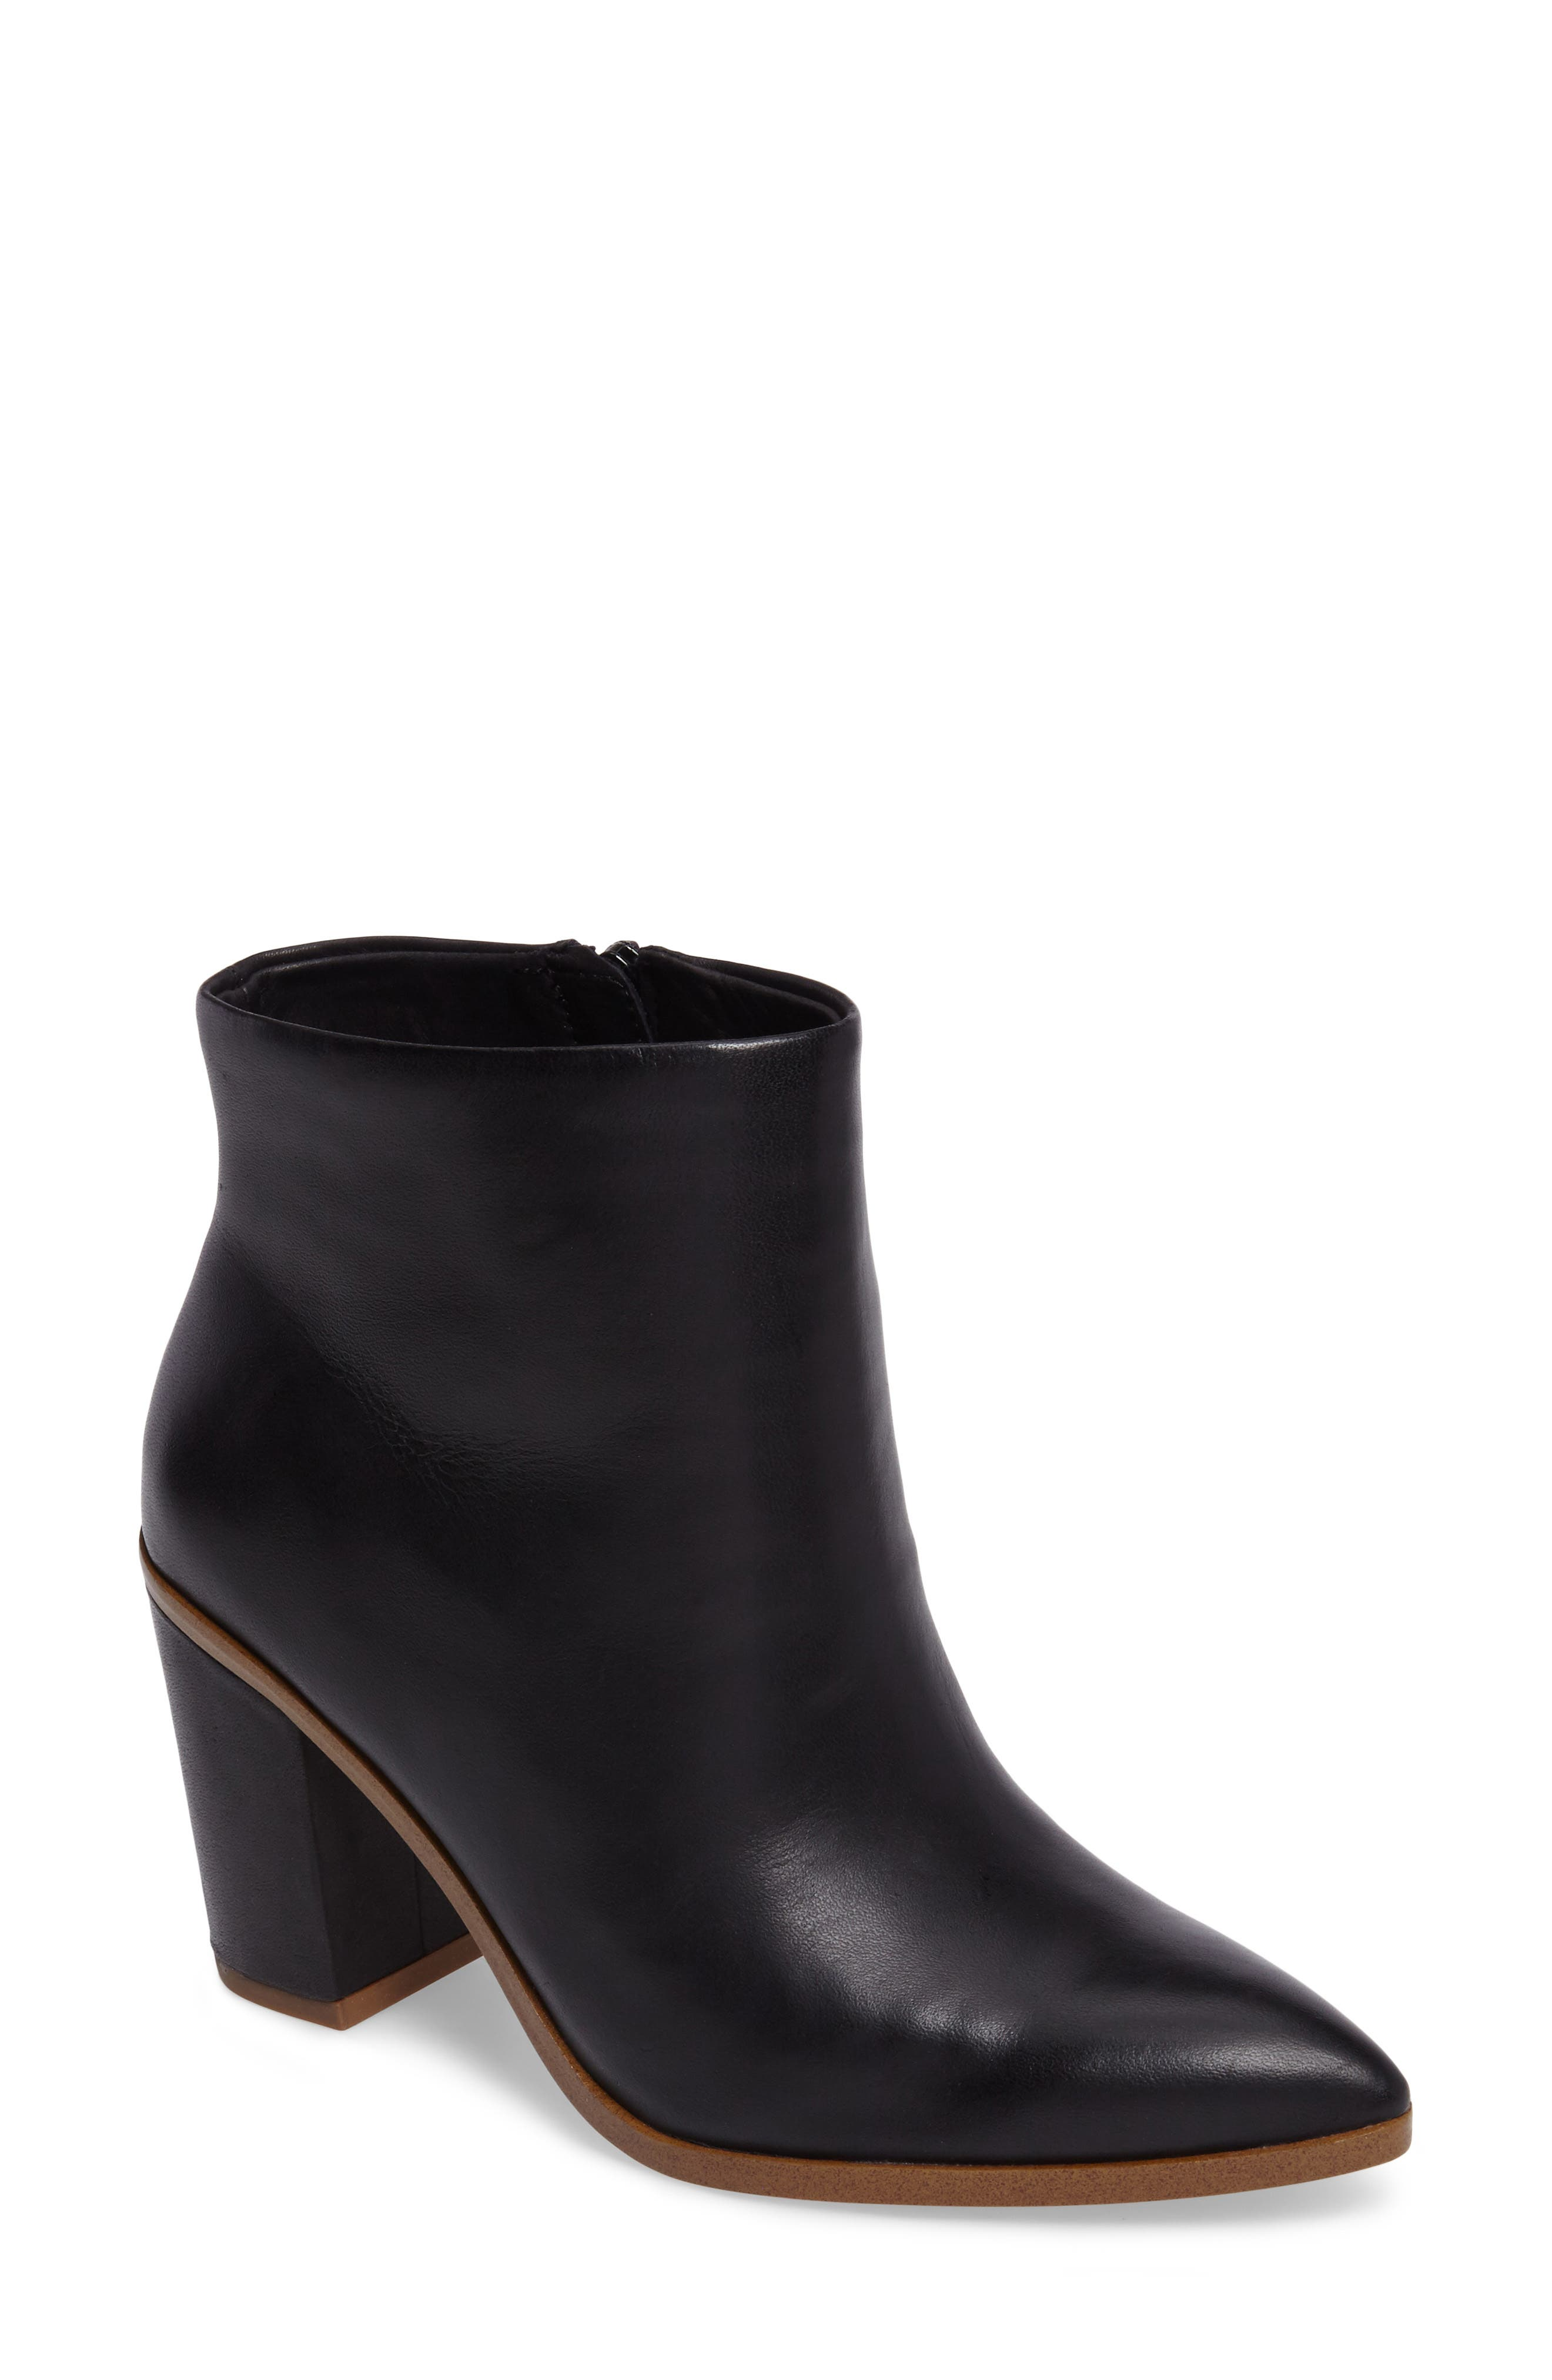 Paven Pointy Toe Bootie,                             Main thumbnail 1, color,                             001